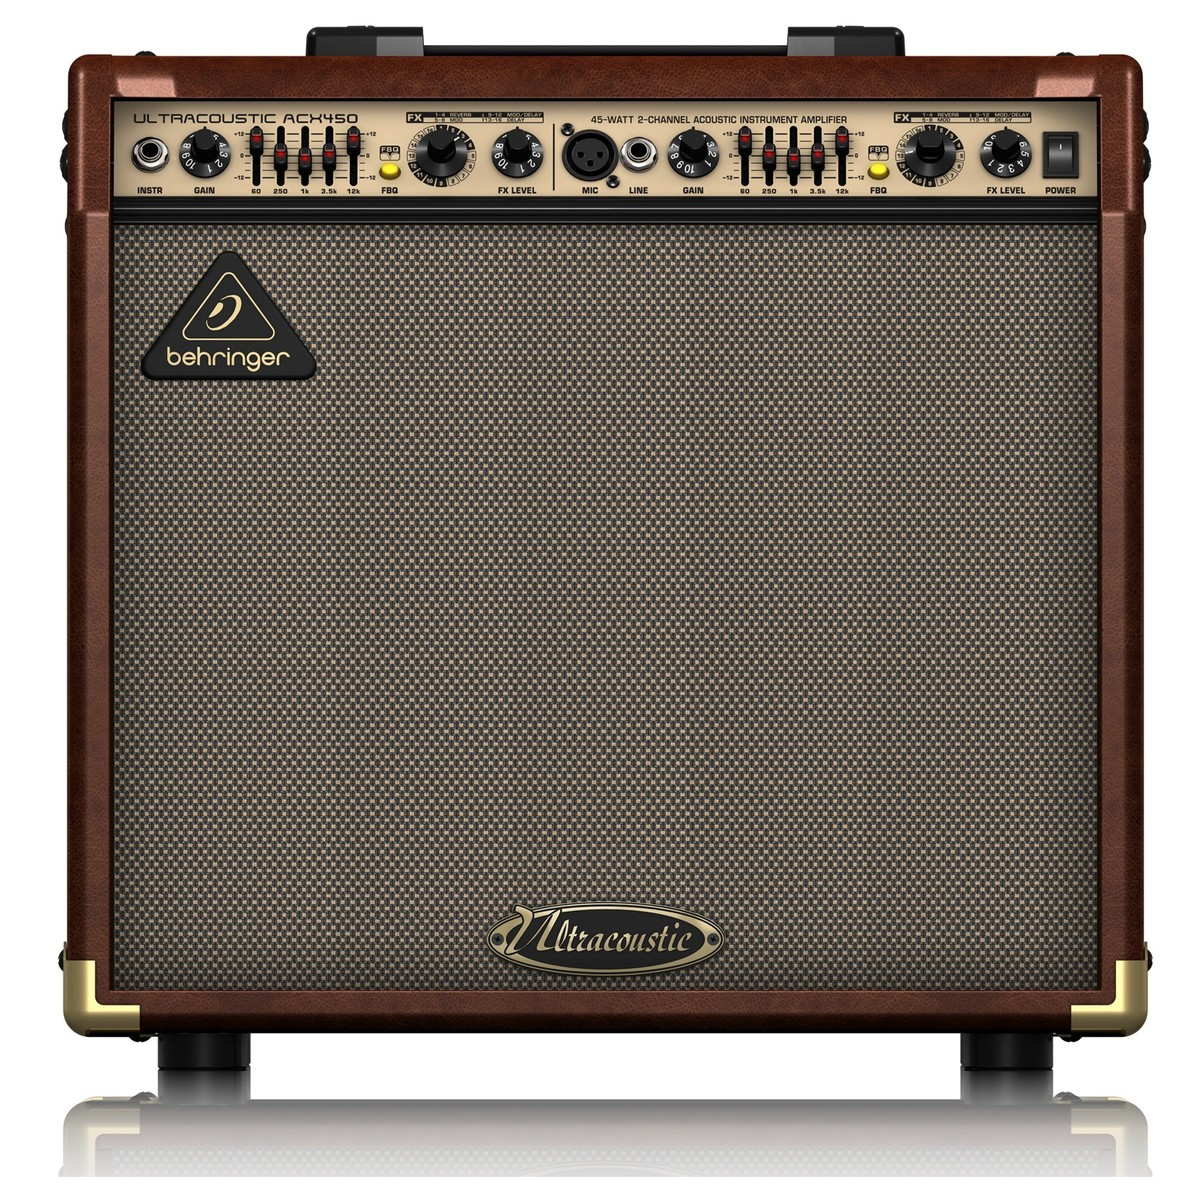 Behringer Ultracoustic Acx450 : behringer acx450 ultracoustic amp at gear4music ~ Russianpoet.info Haus und Dekorationen